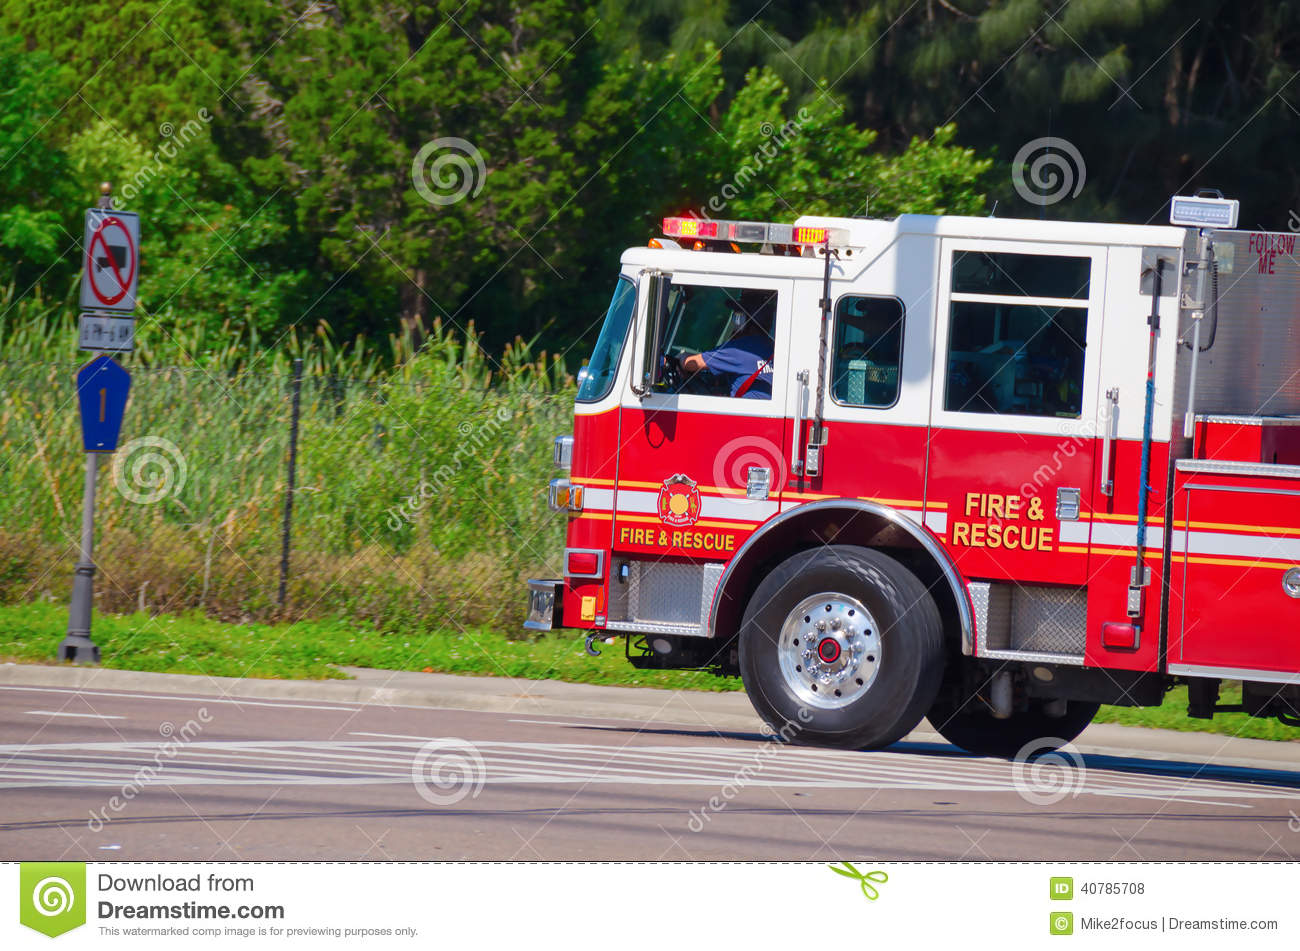 Firetruck driving fast with flashing lights